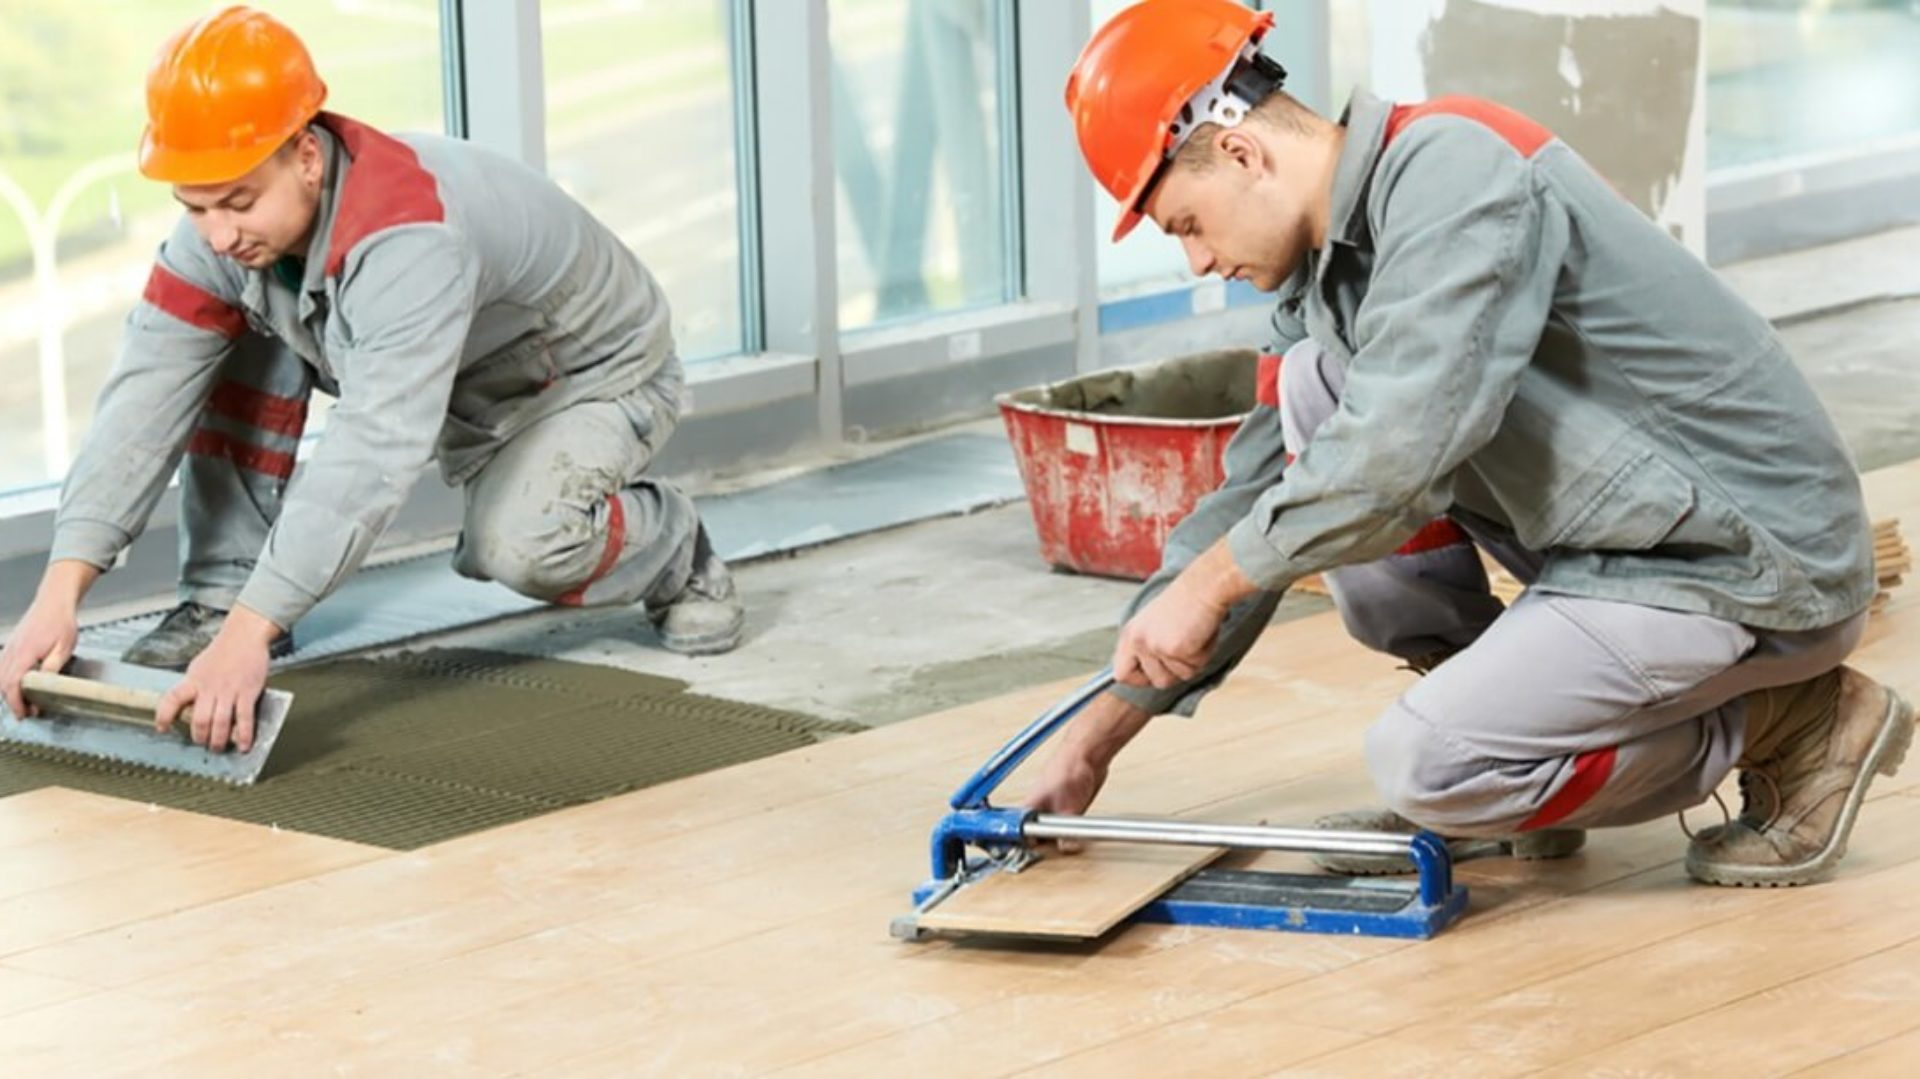 Stuart Home Remodeling & Drywall Contractor Services